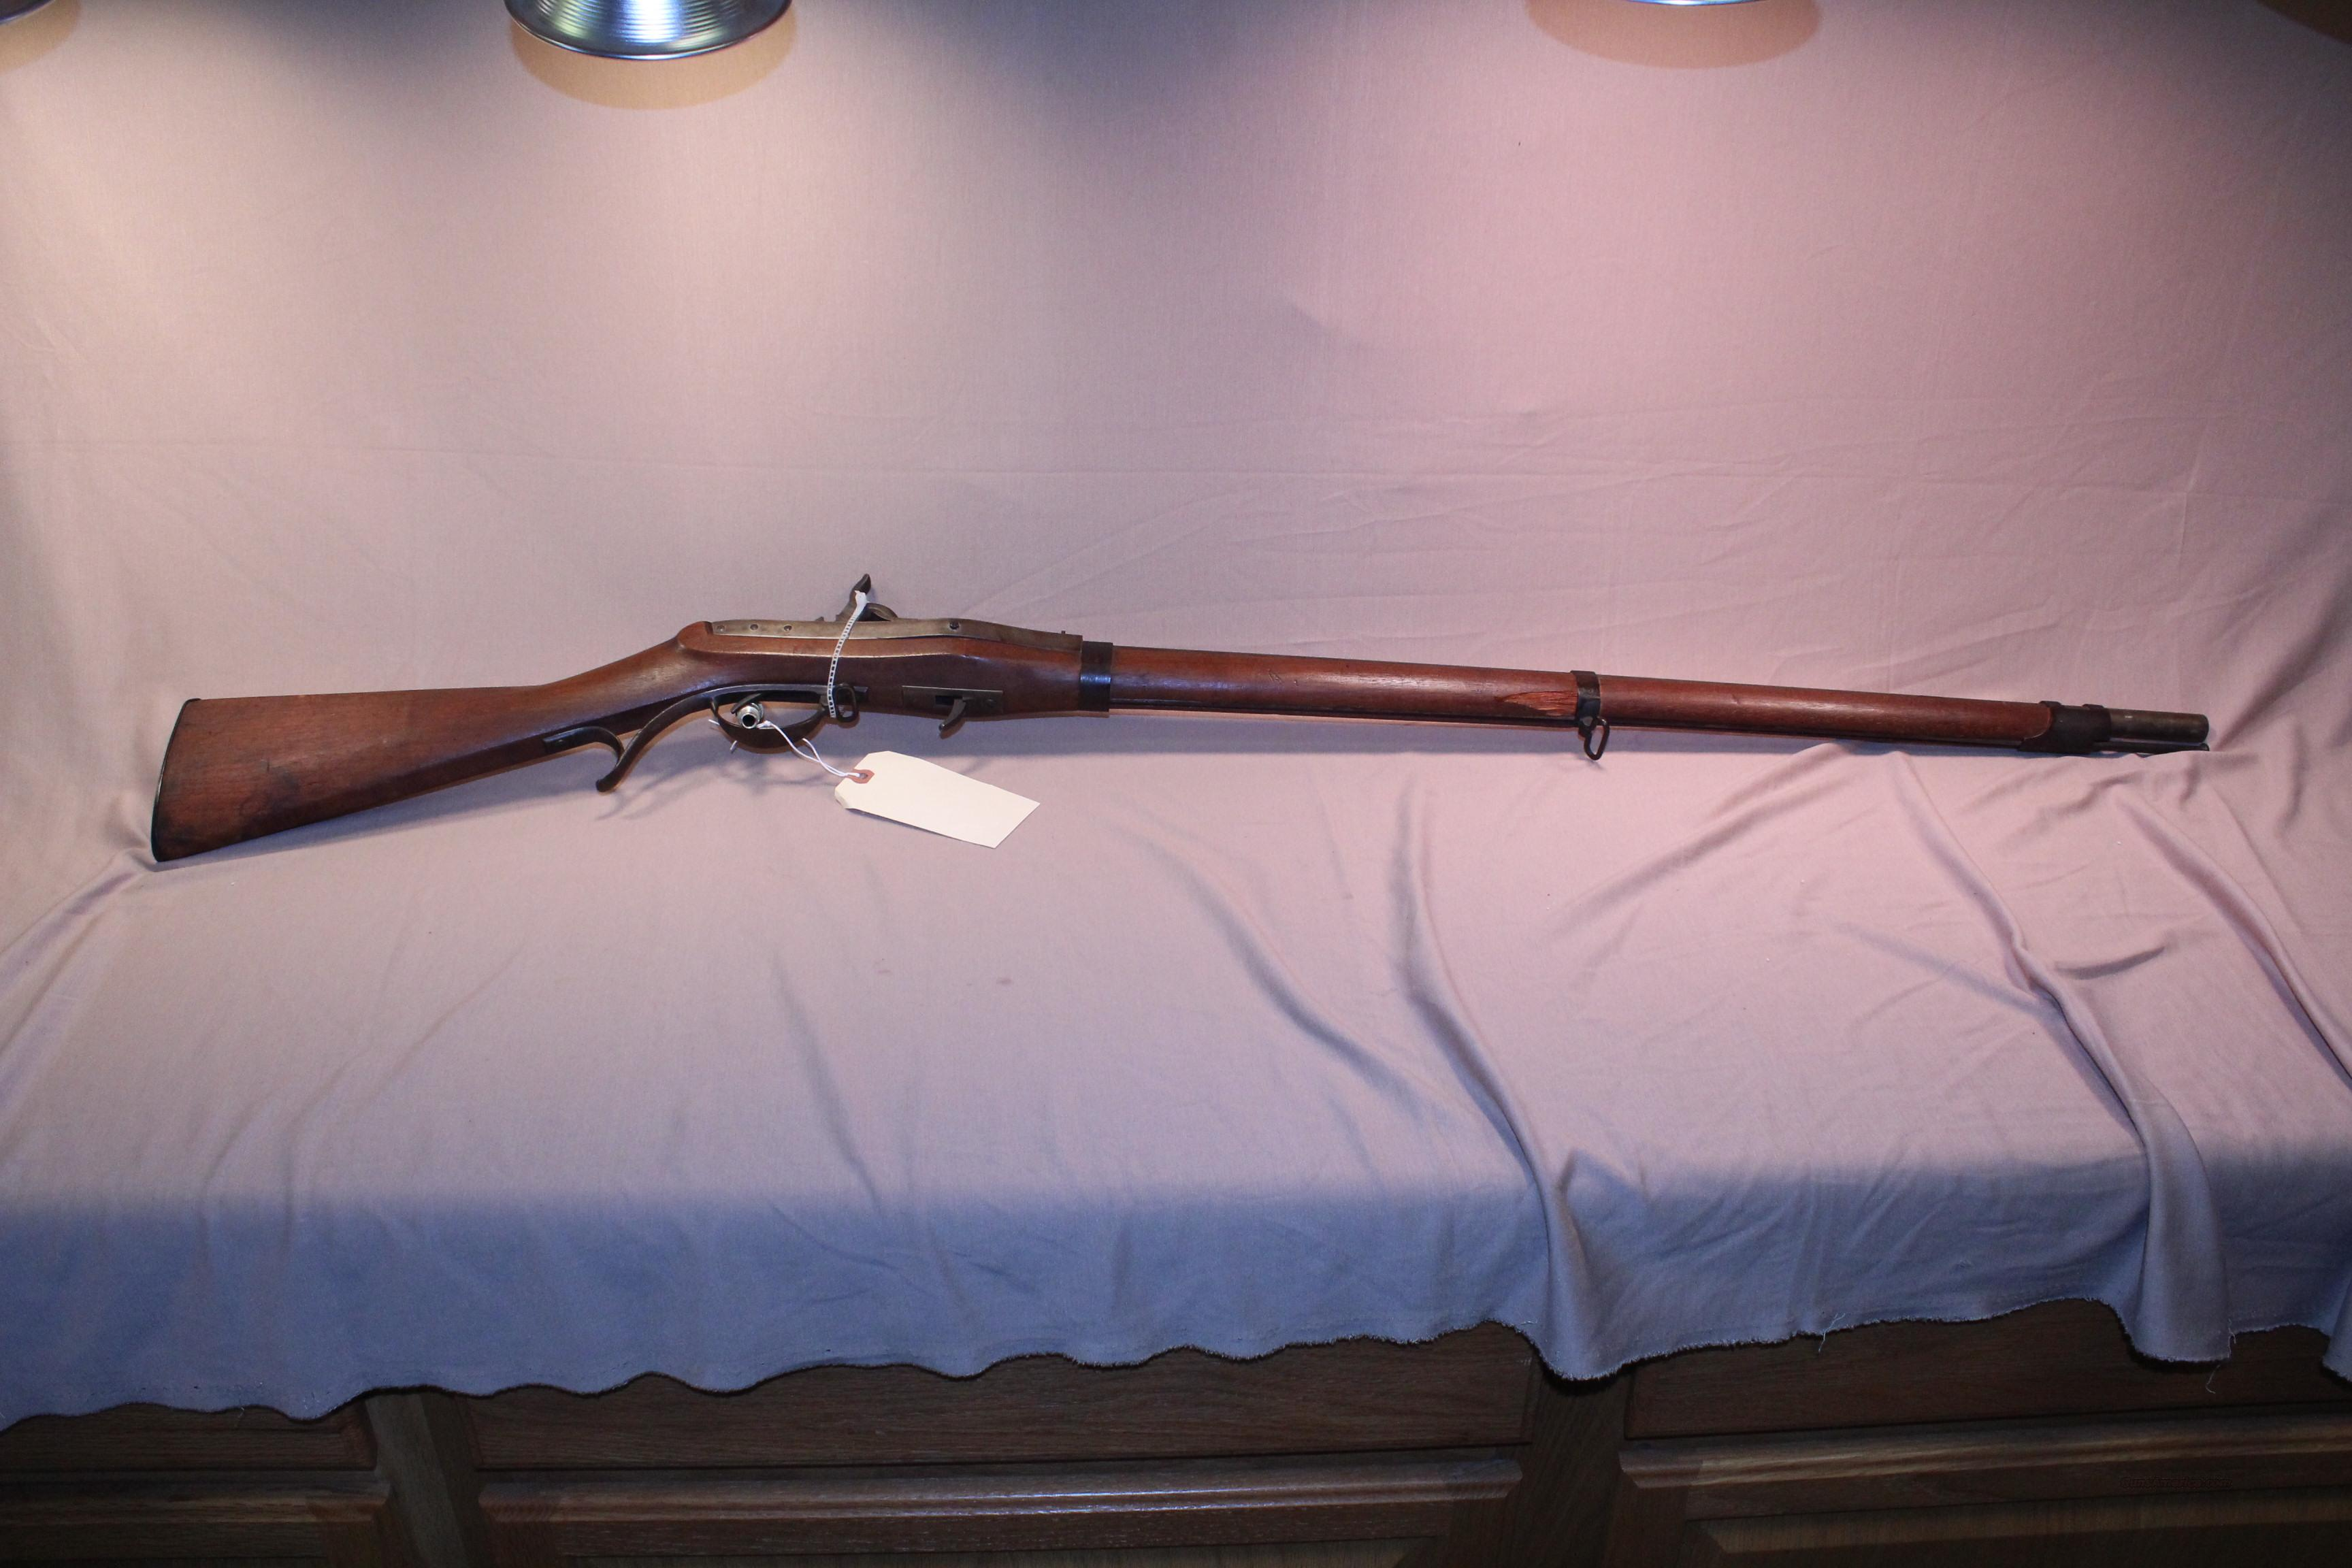 John Hall 1819 Rifle with bayonet  Guns > Rifles > Antique (Pre-1899) Rifles - Perc. Misc.